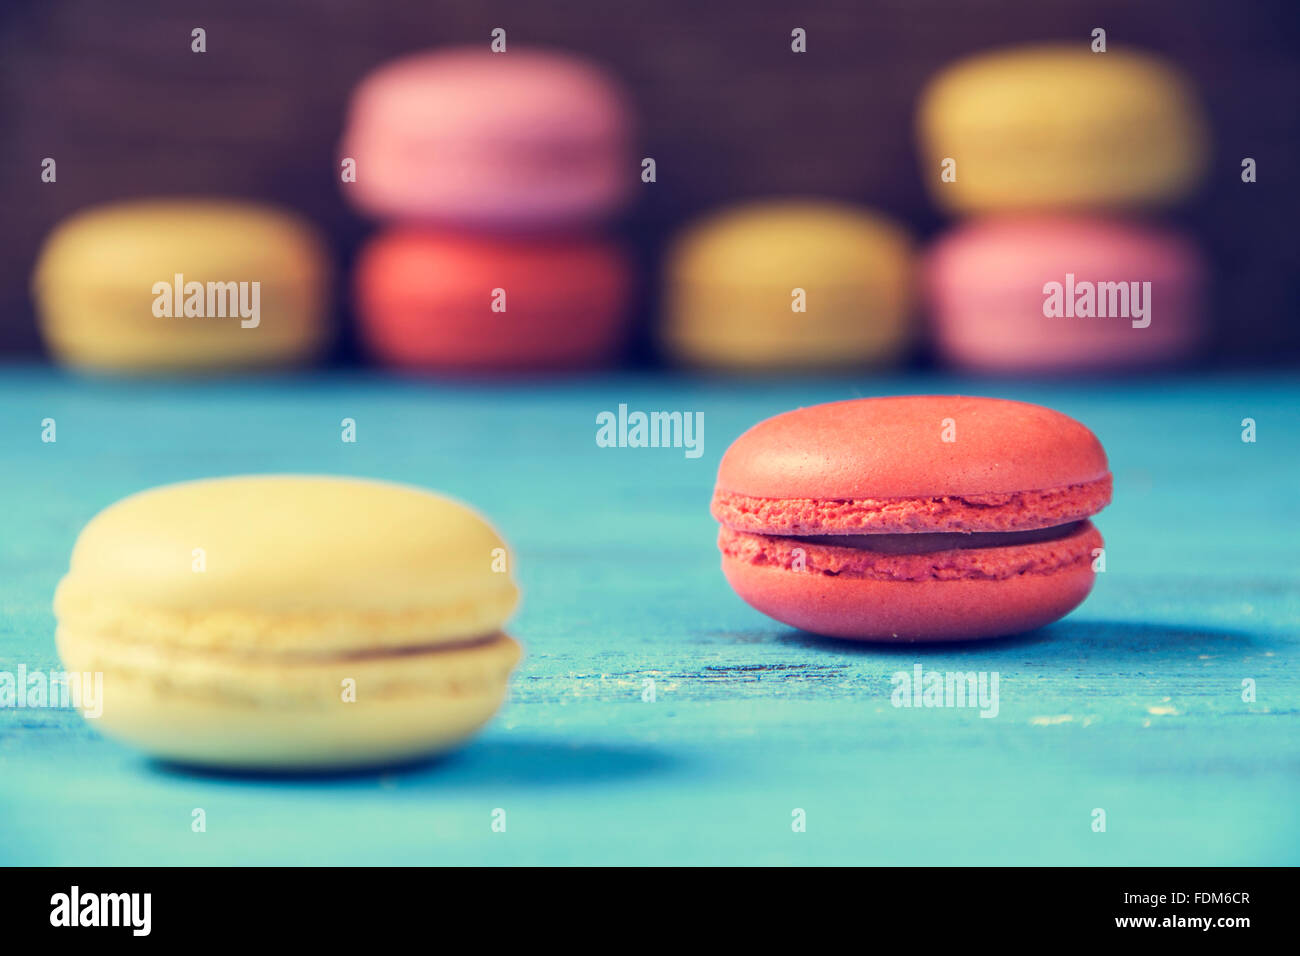 some appetizing macarons with different colors and flavors on a blue rustic wooden surface - Stock Image